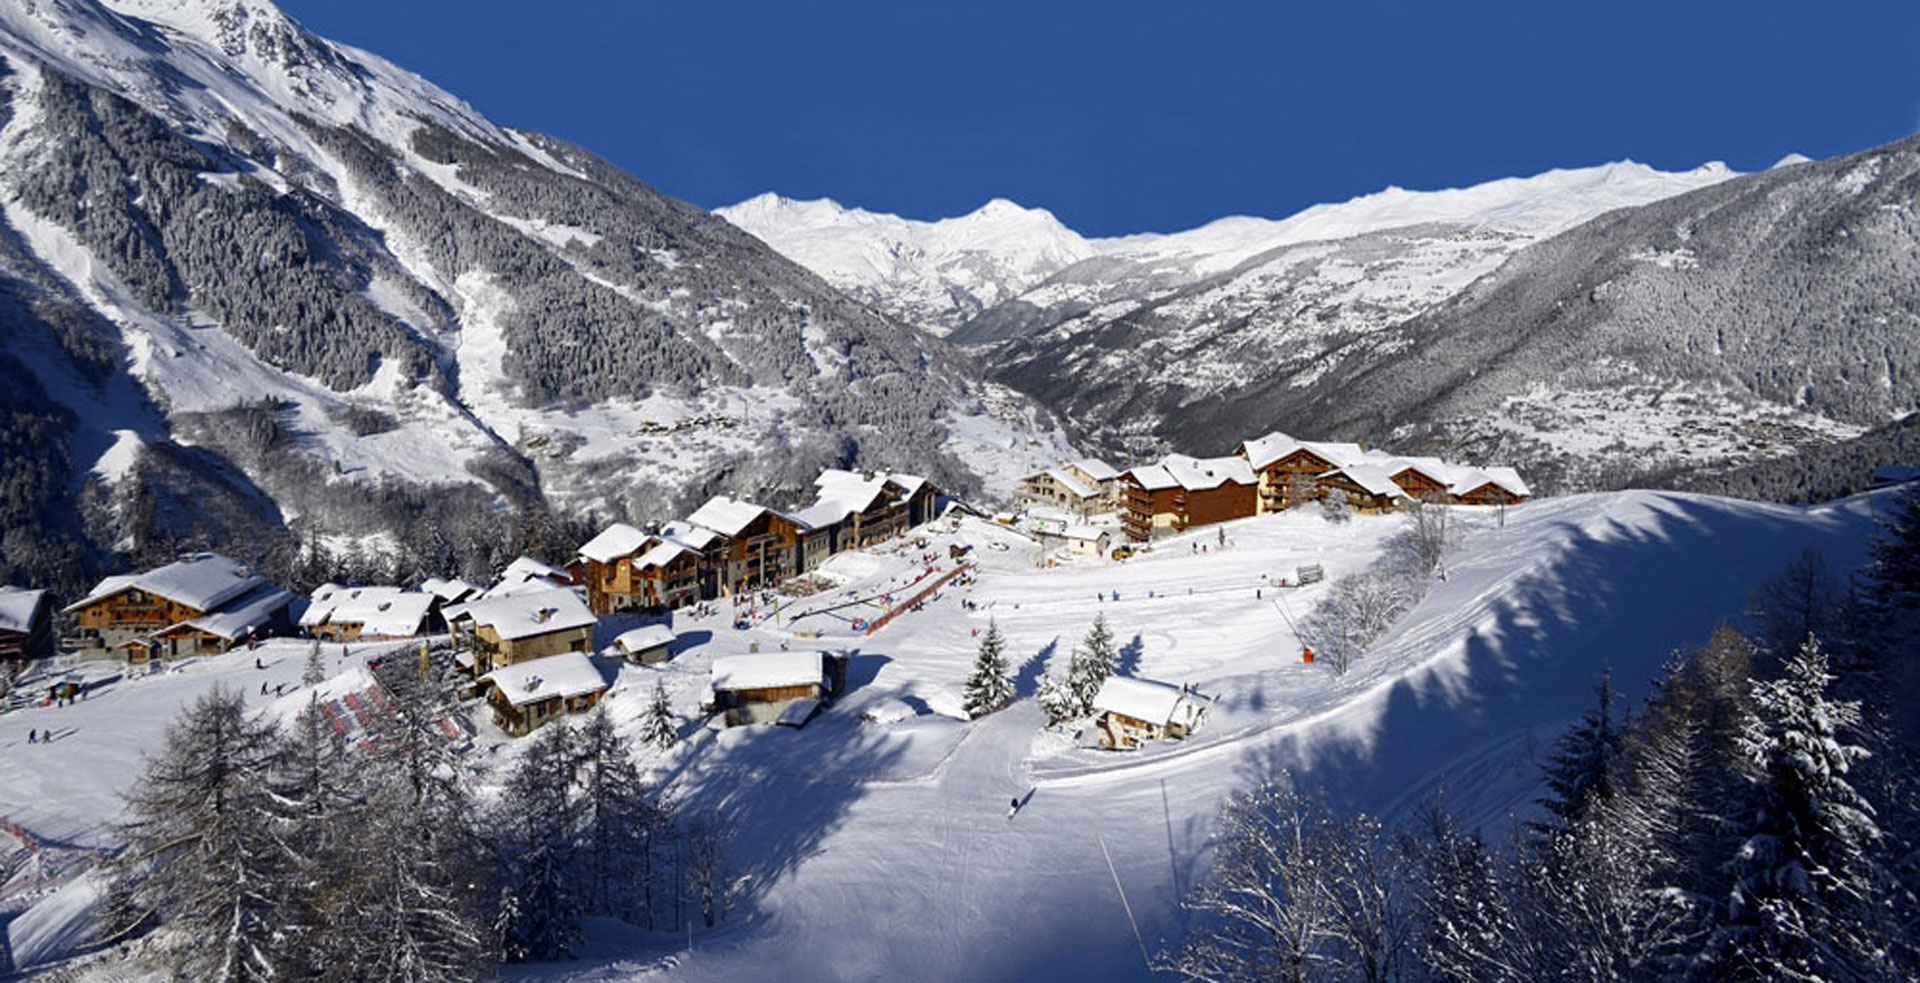 The snowfront of Sainte Foy where beginners and children's ski lessons take place as seen from a drone